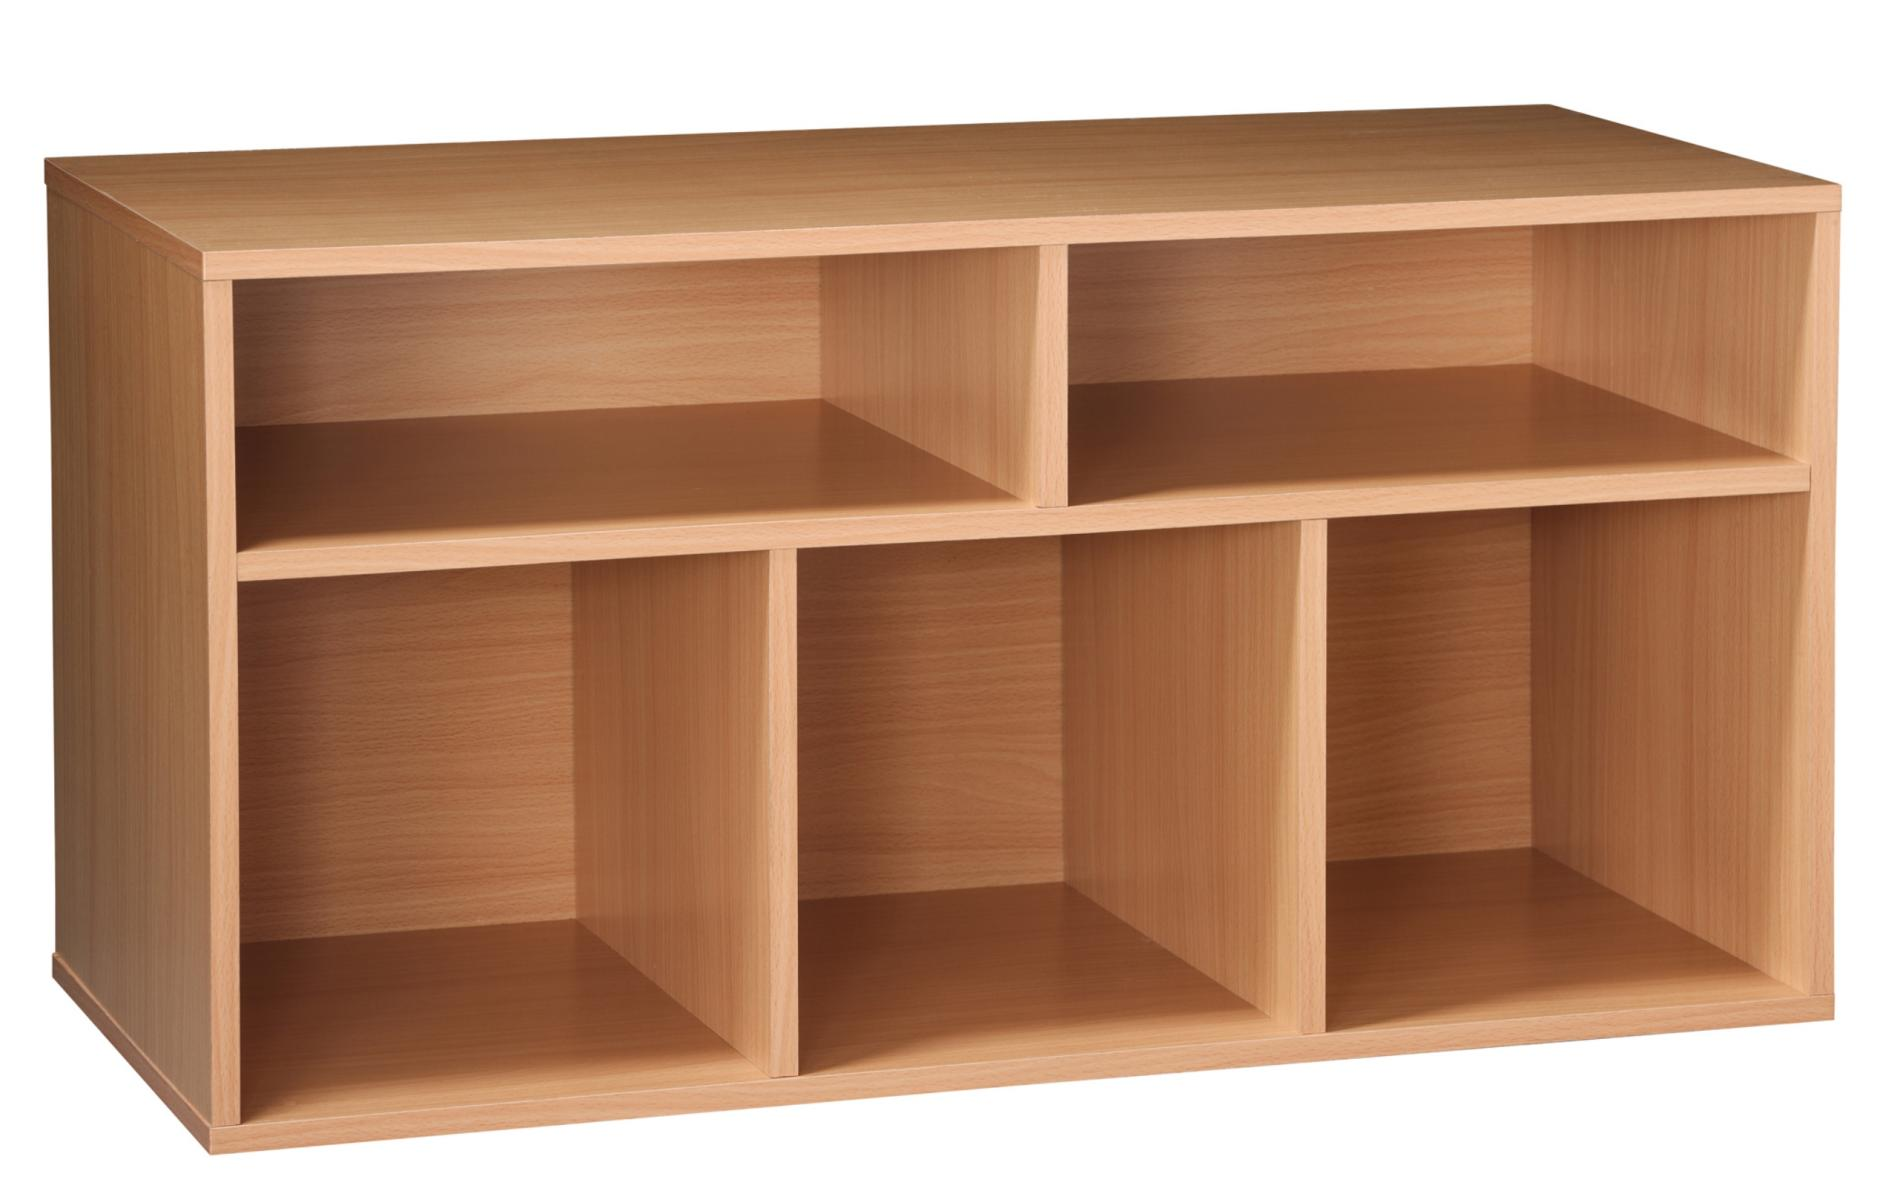 essential home 5 cube storage unit oak finish shop your way online shopping u0026 earn points on tools appliances electronics u0026 more